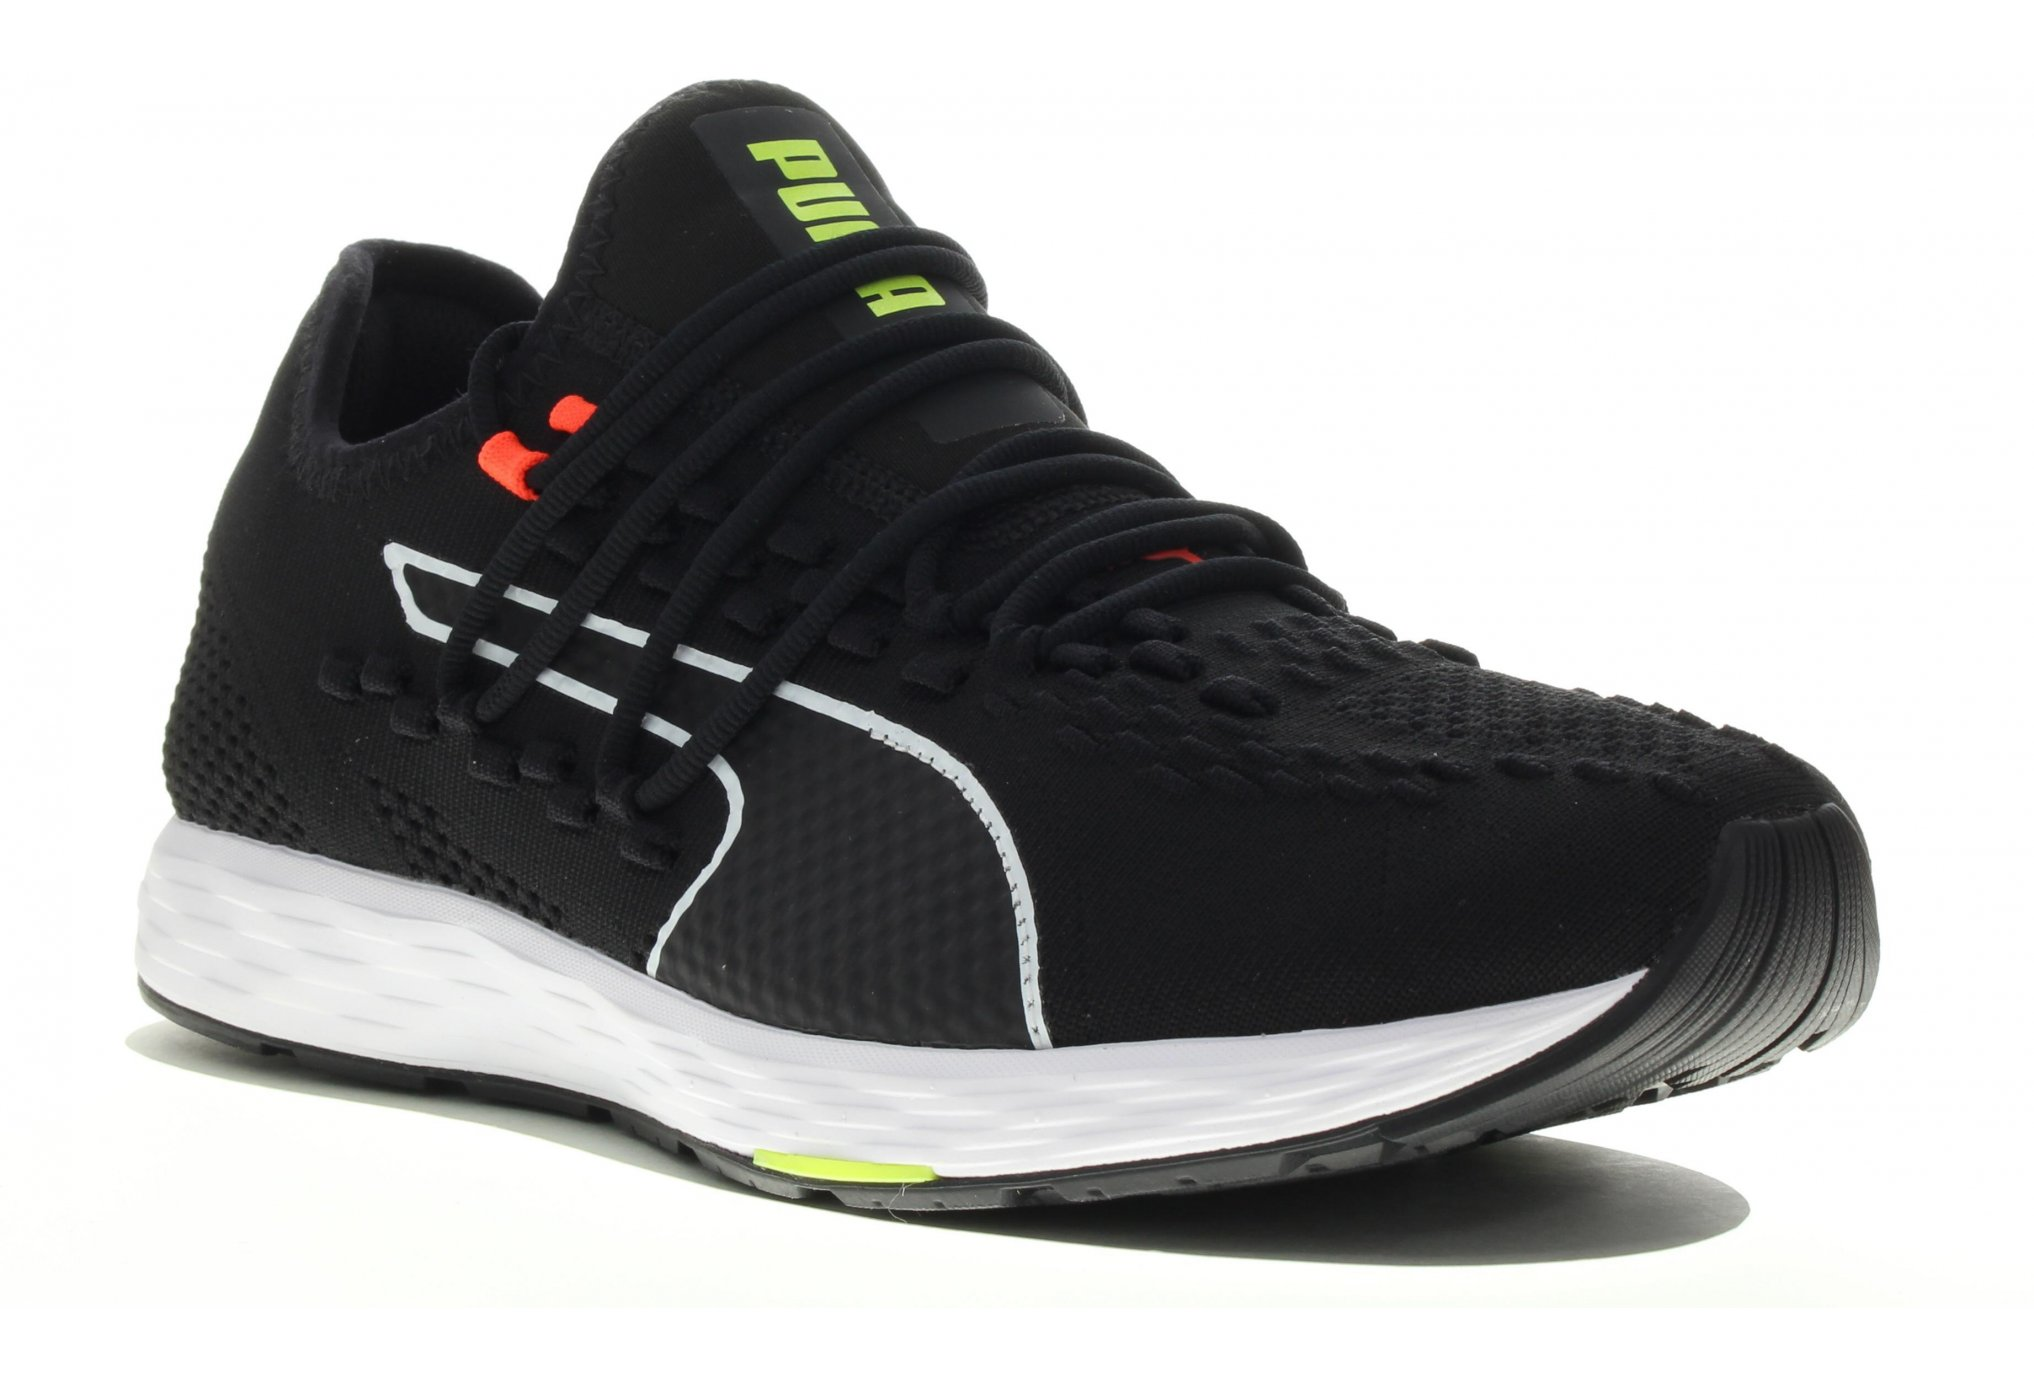 Puma Speed 300 Racer M Chaussures homme